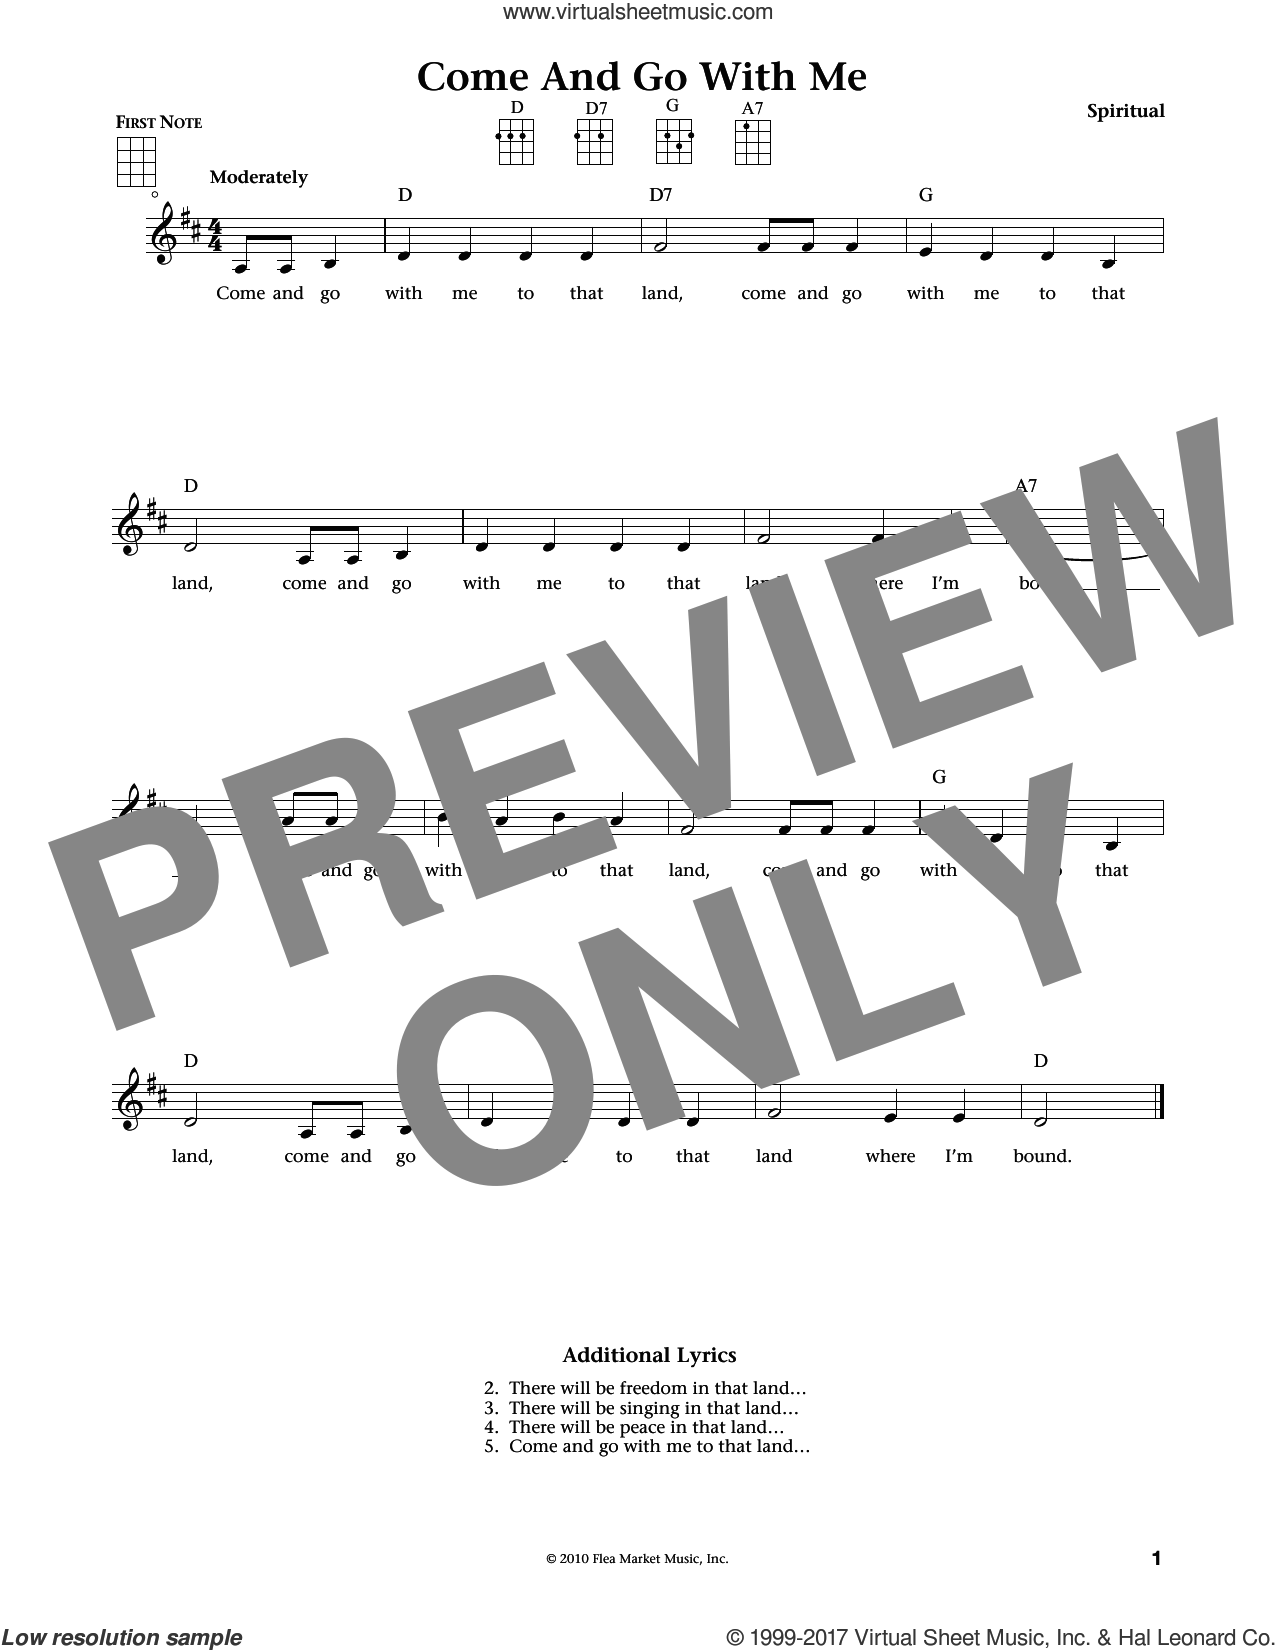 Come And Go With Me sheet music for ukulele , Jim Beloff and Liz Beloff, intermediate skill level